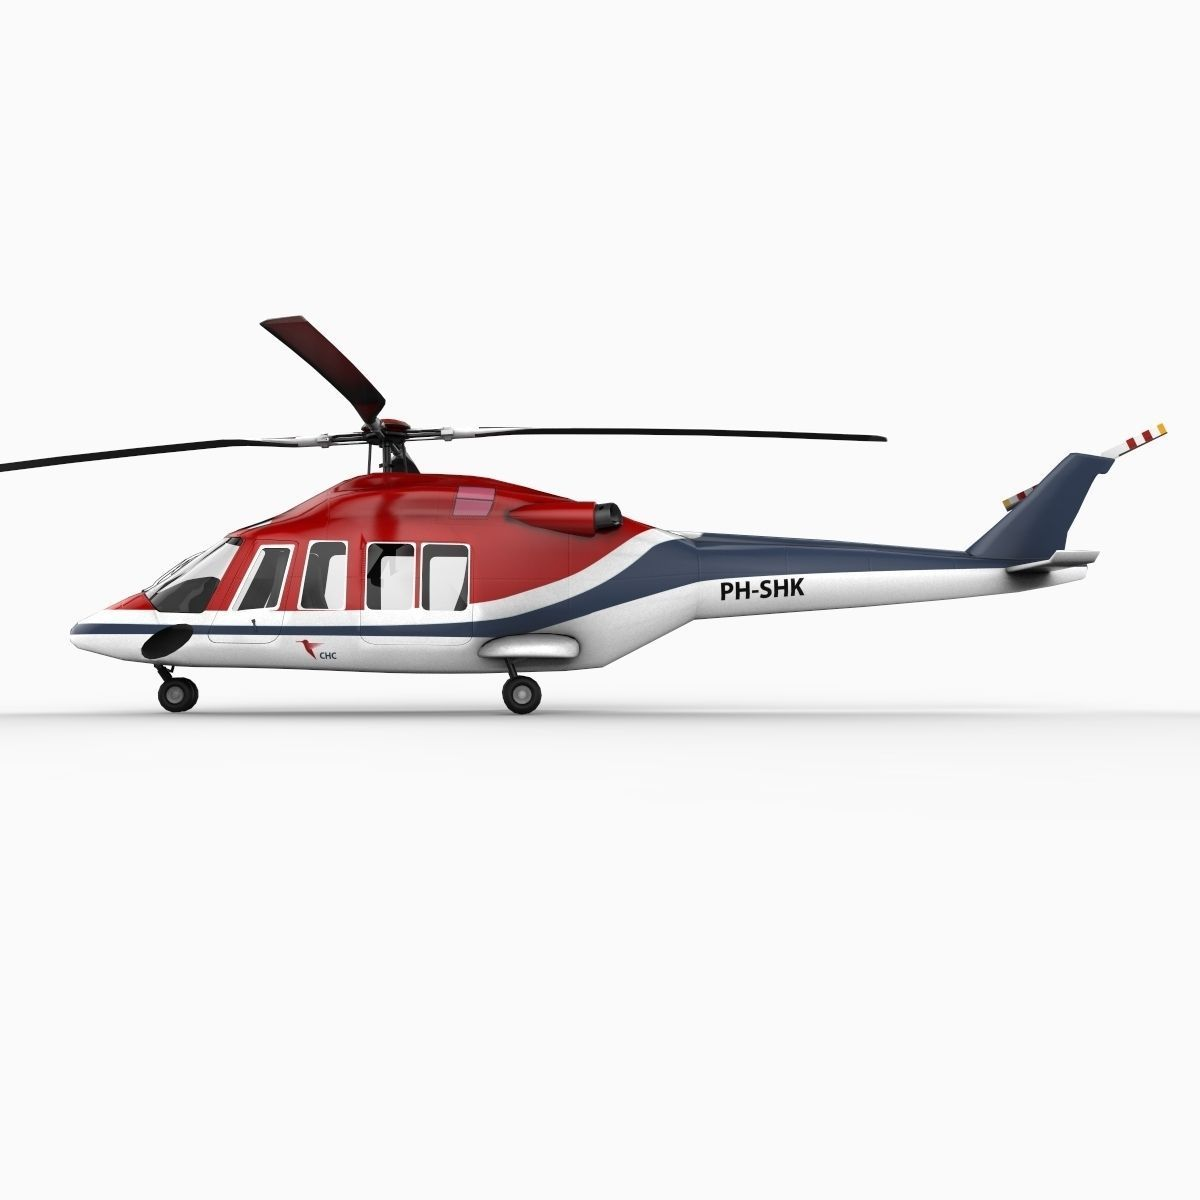 westland helicopters jobs with Agustawestland Aw139 on Agustawestland Aw139 besides Leonardos Aw139m Targets Czech Opportunity 436121 moreover A109 32sqn 0 furthermore Eight Aw139s Strengthen Rescue Border Patrol Services Italy likewise Italys Agustawestland In Swedish Corruption Probe.